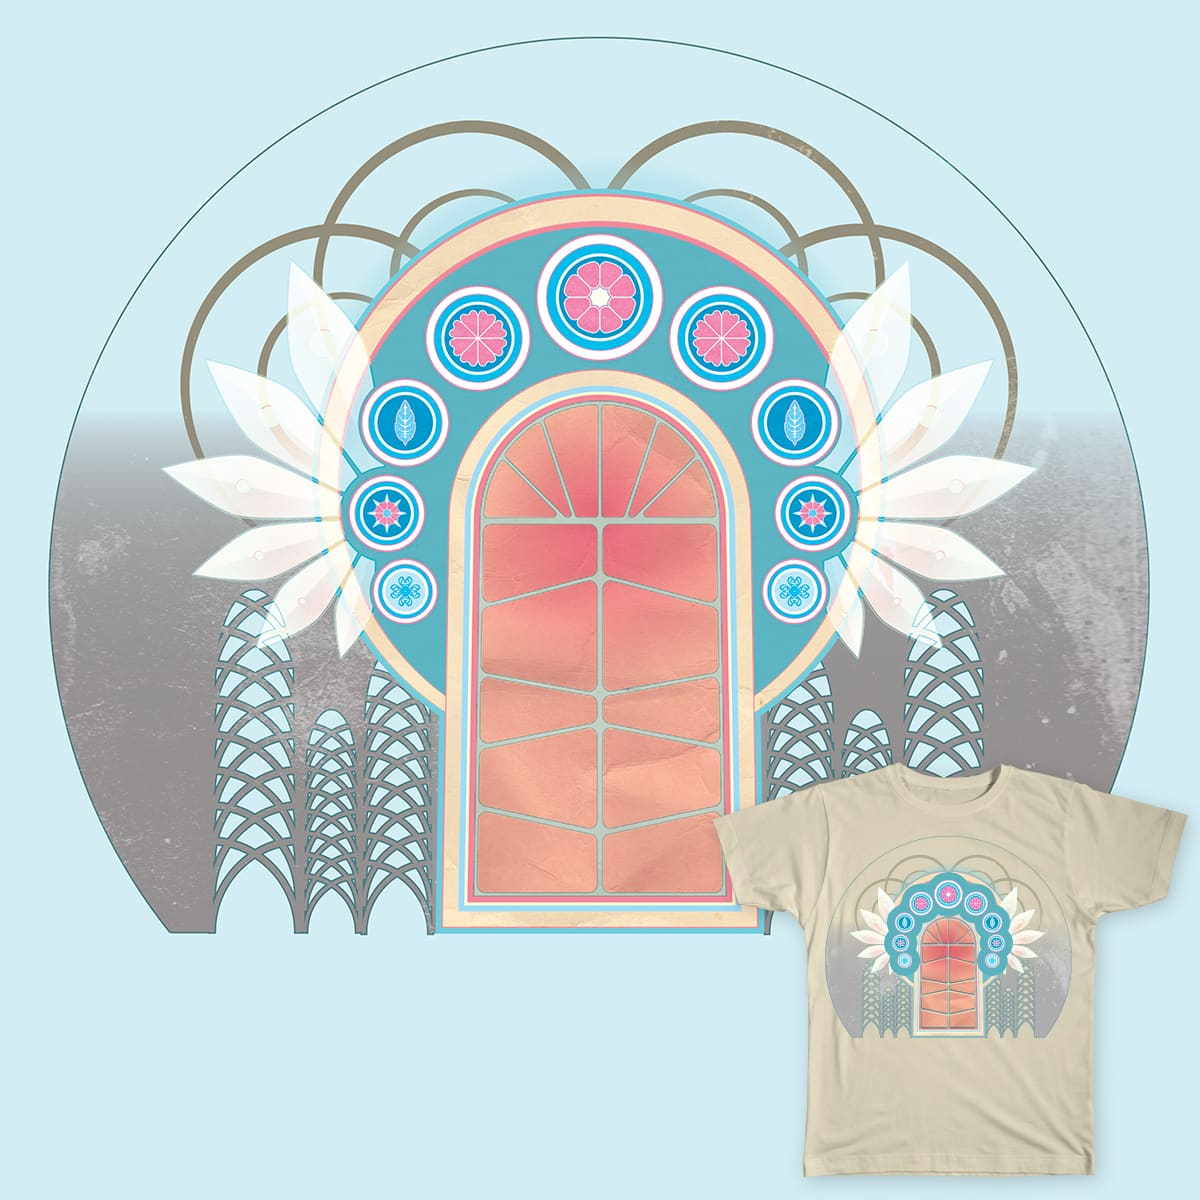 The Gateway by Greenwoode on Threadless